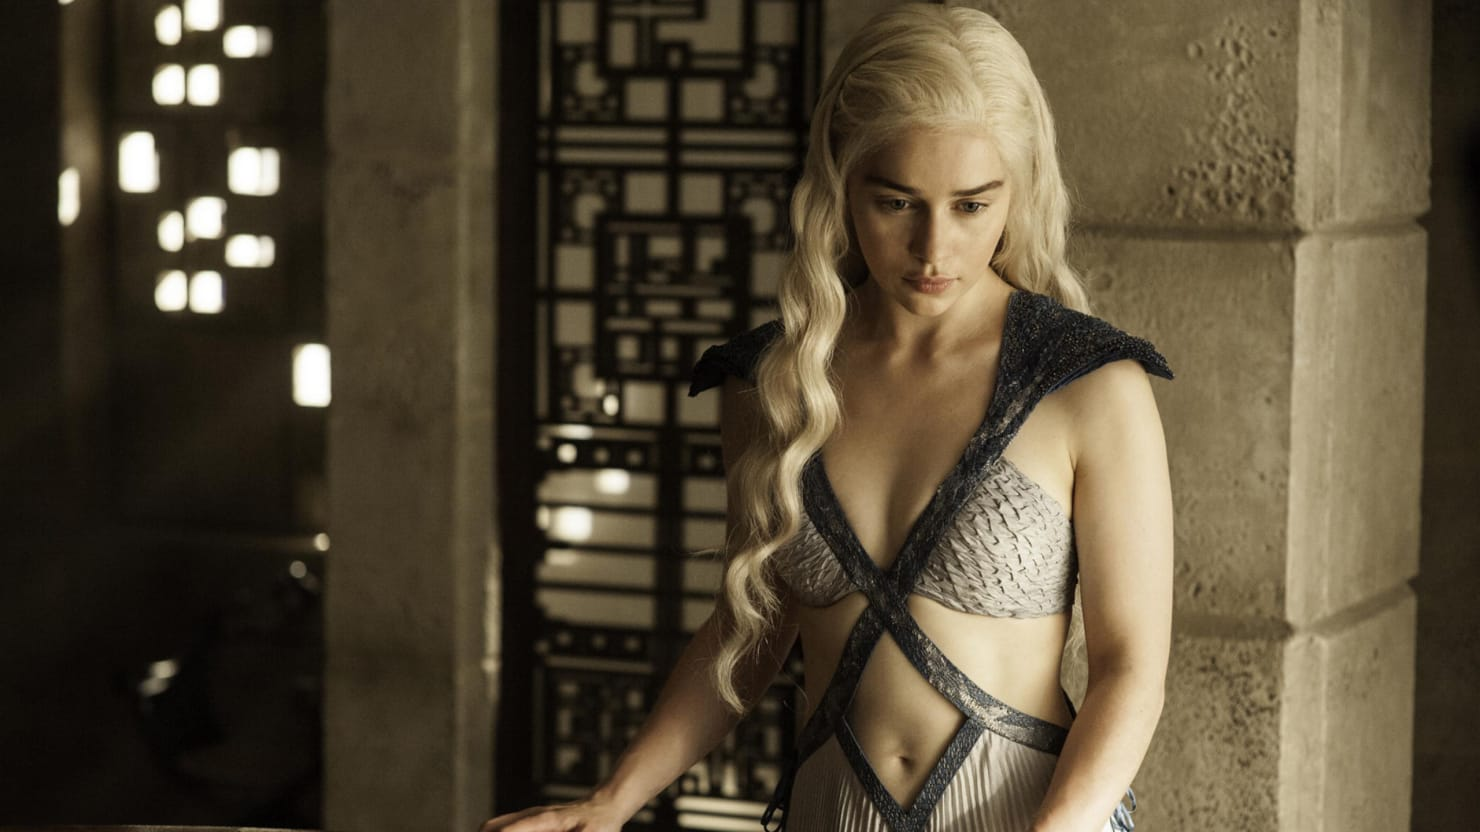 The Ultimate 'Game of Thrones' Workout